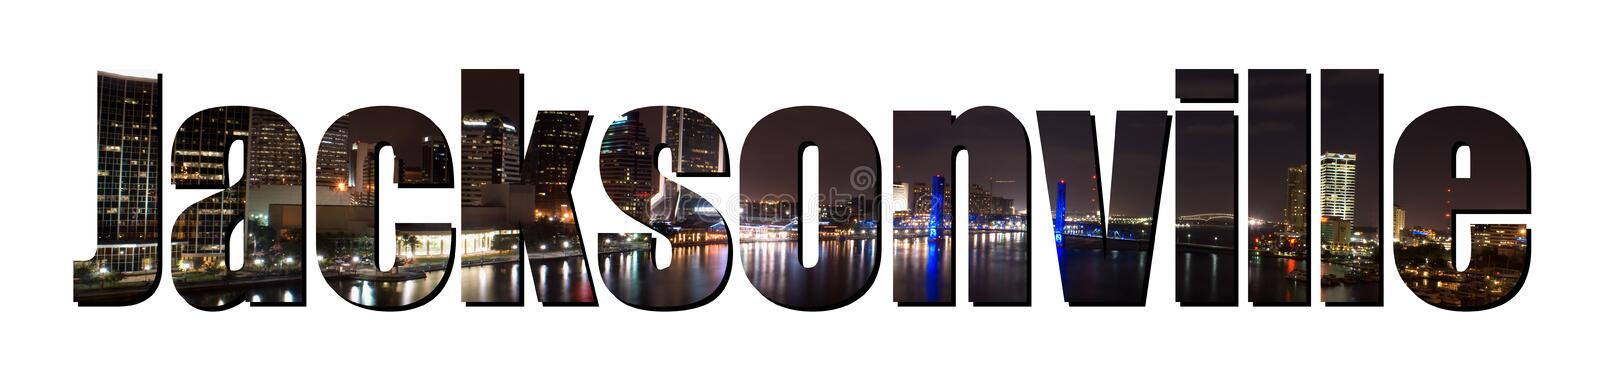 Jacksonville Florida stock illustratie